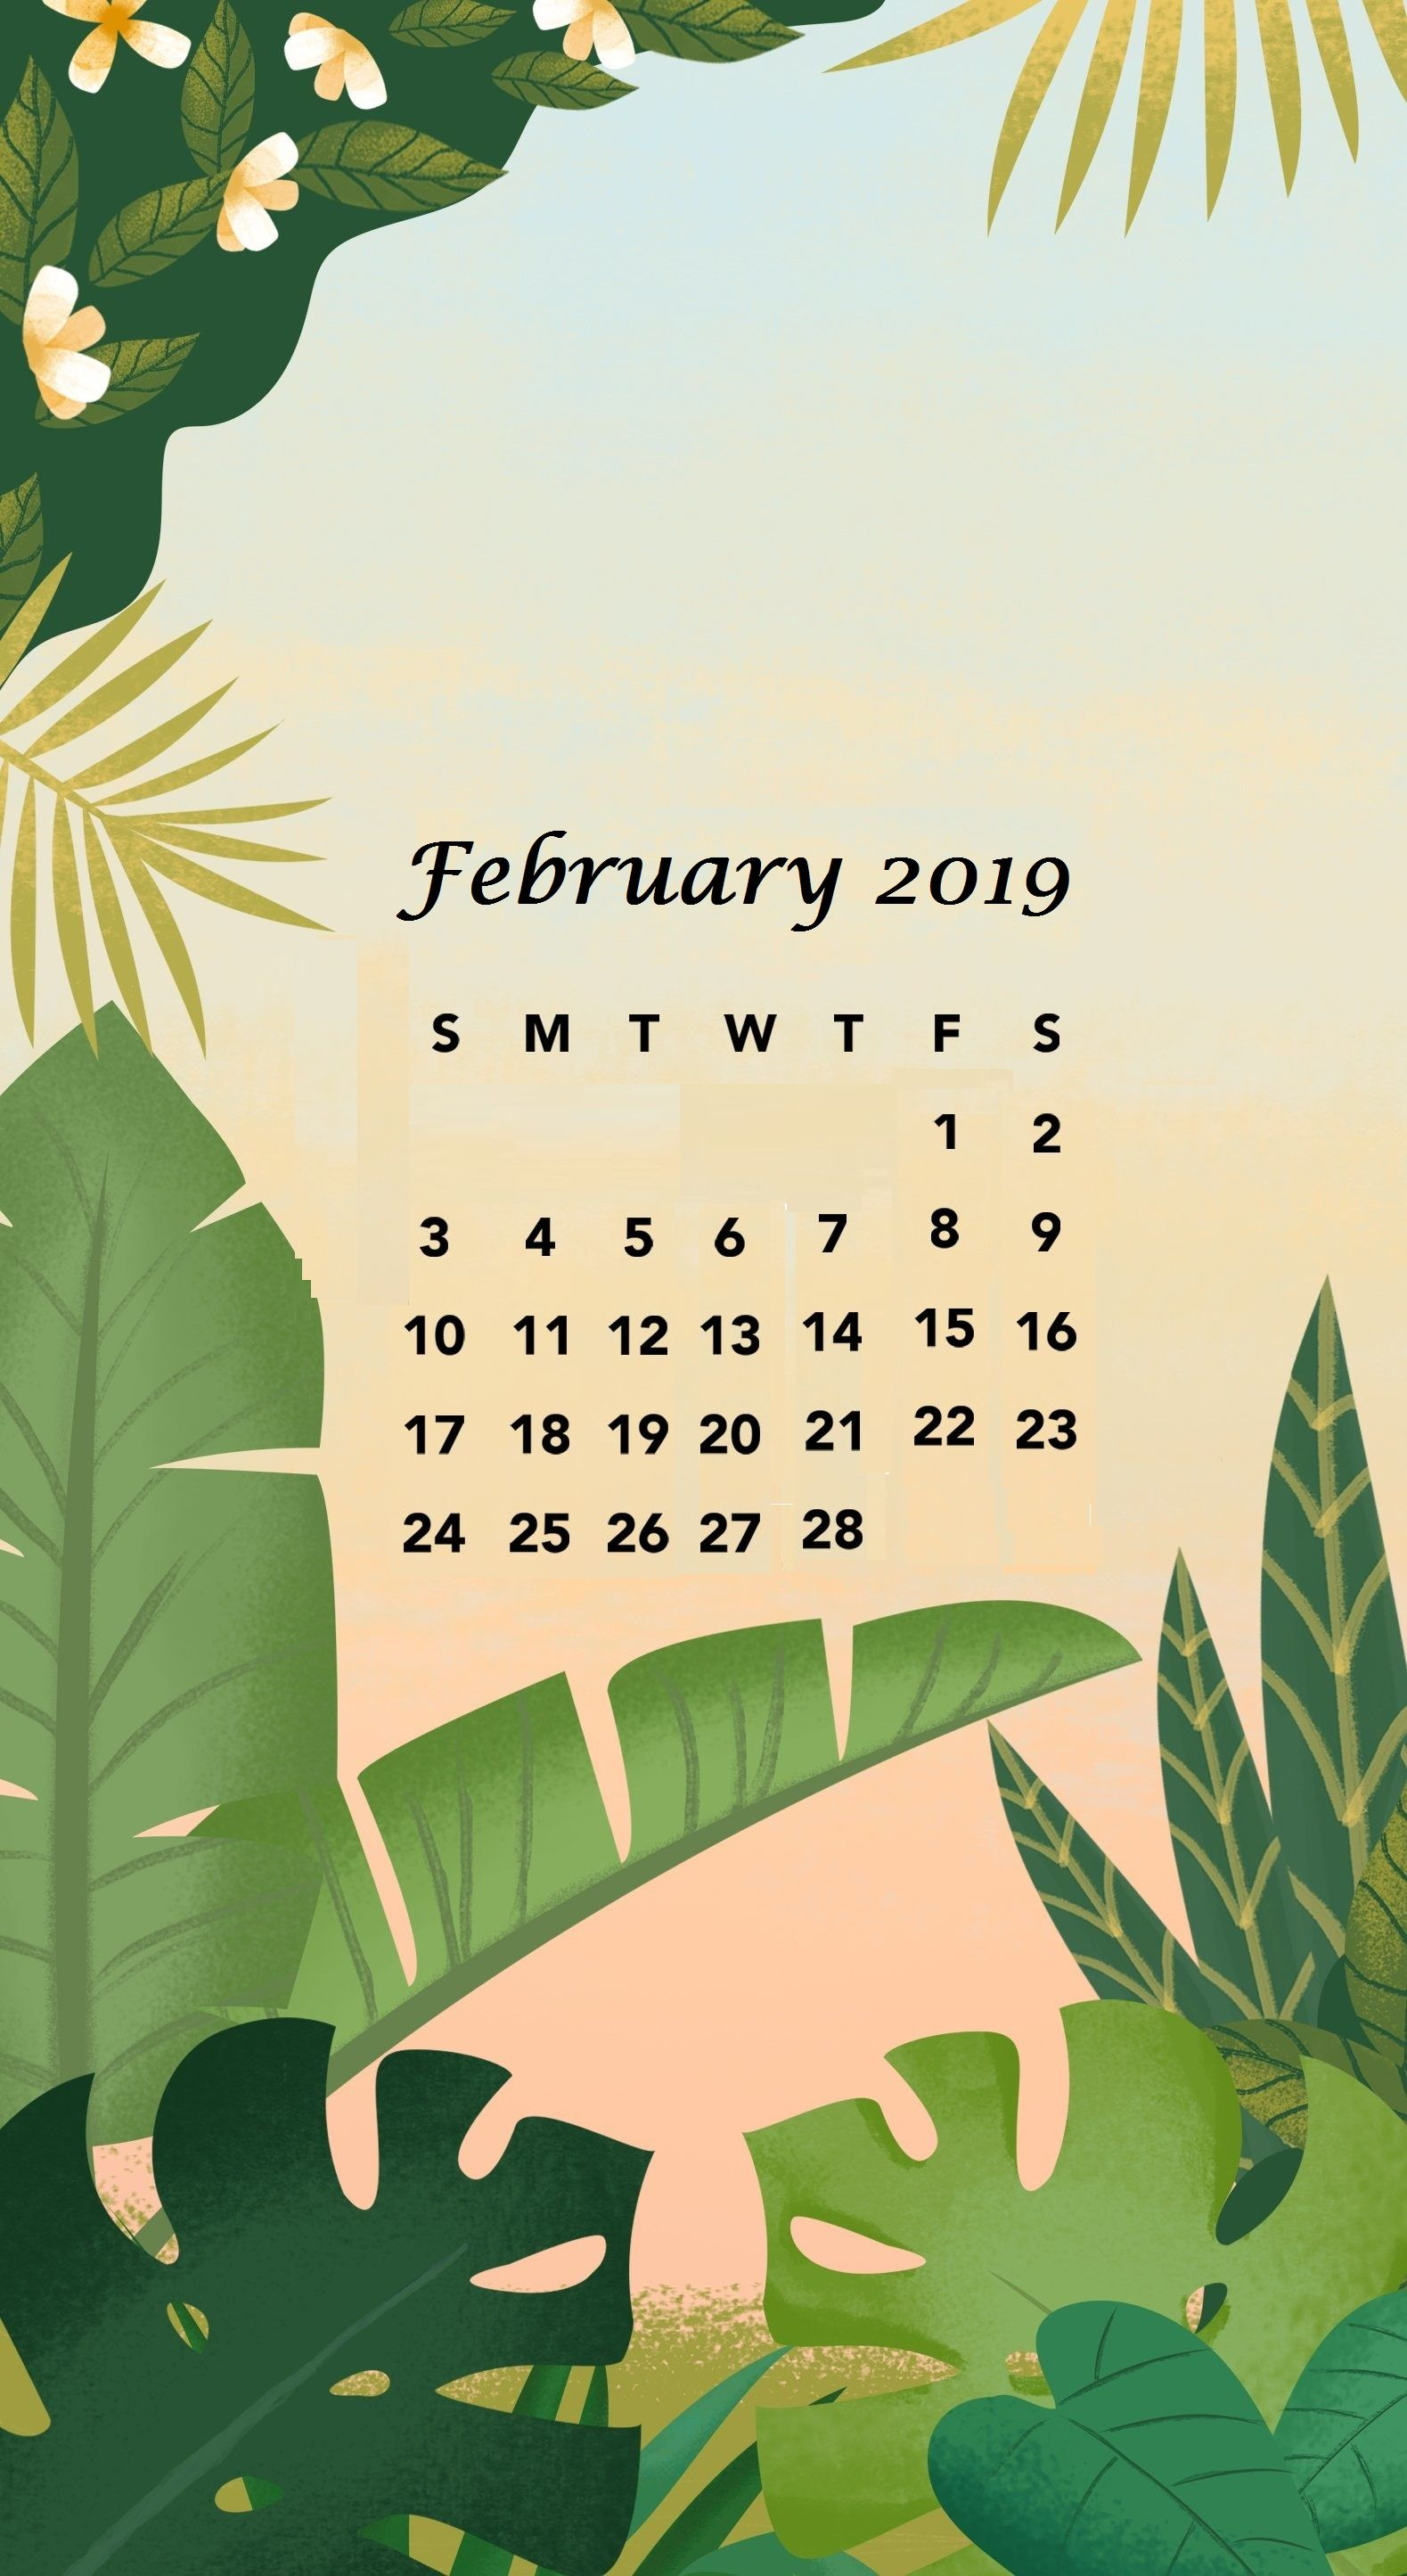 Free February 2019 iPhone Calendar Wallpaper Download